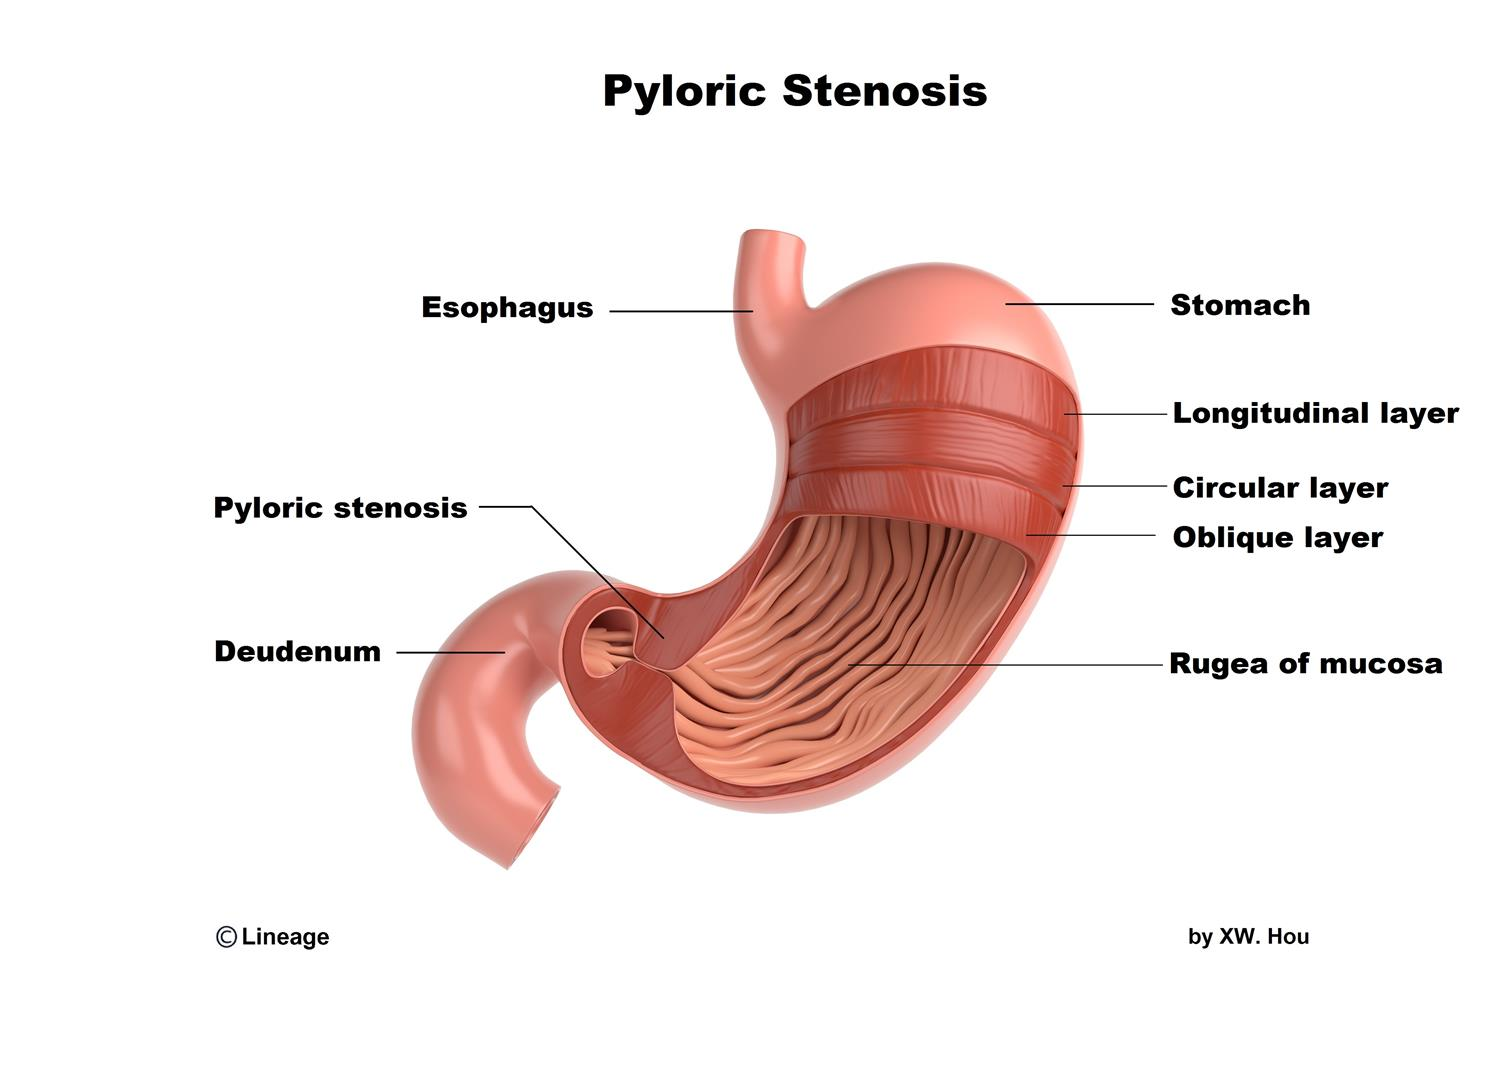 https://upload.medbullets.com/topic/110096/images/pyloric_stenosis.jpg